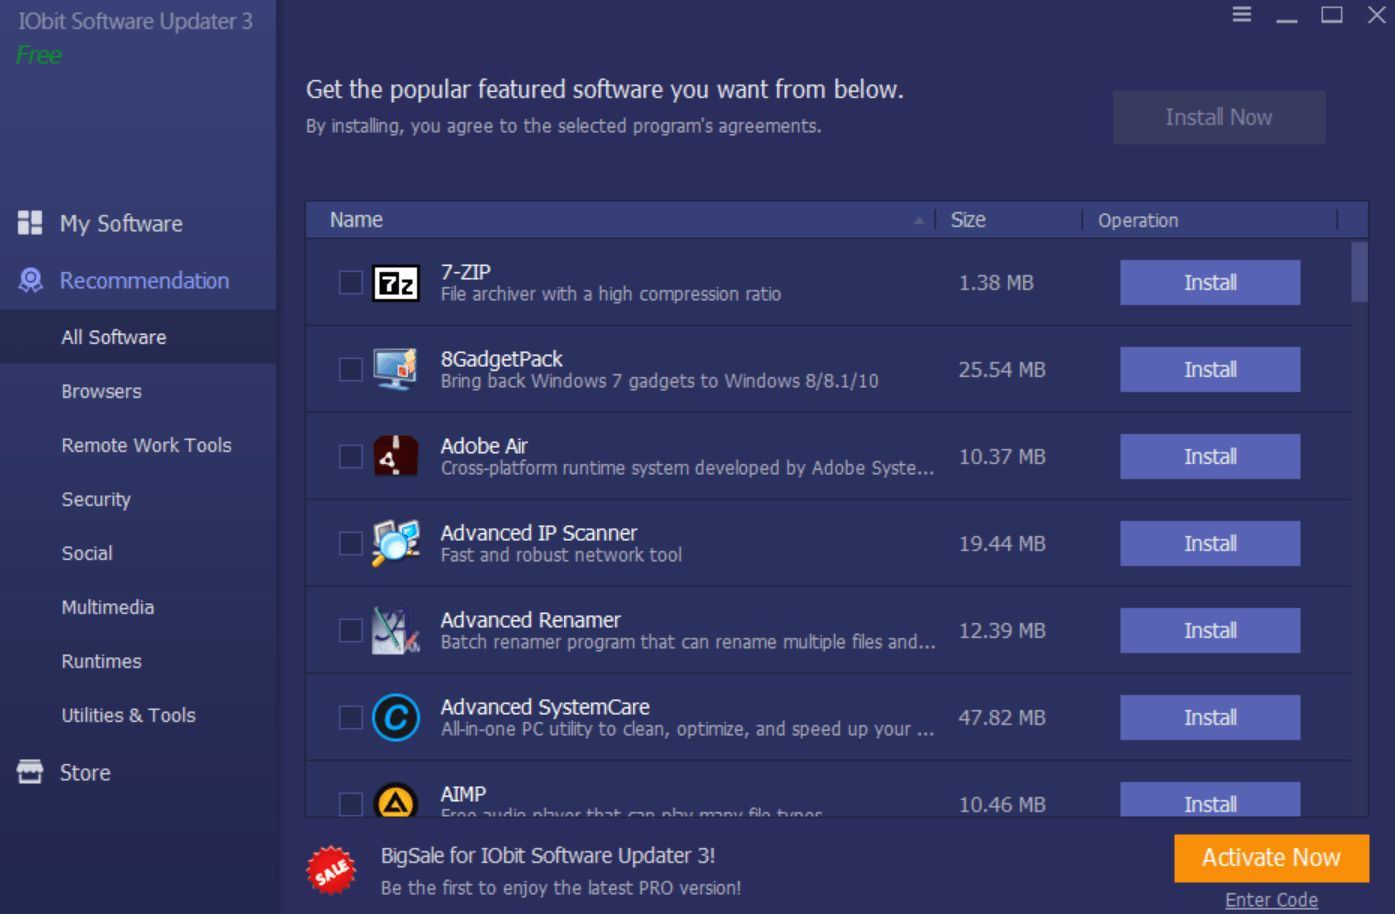 iobit software updater recommendations